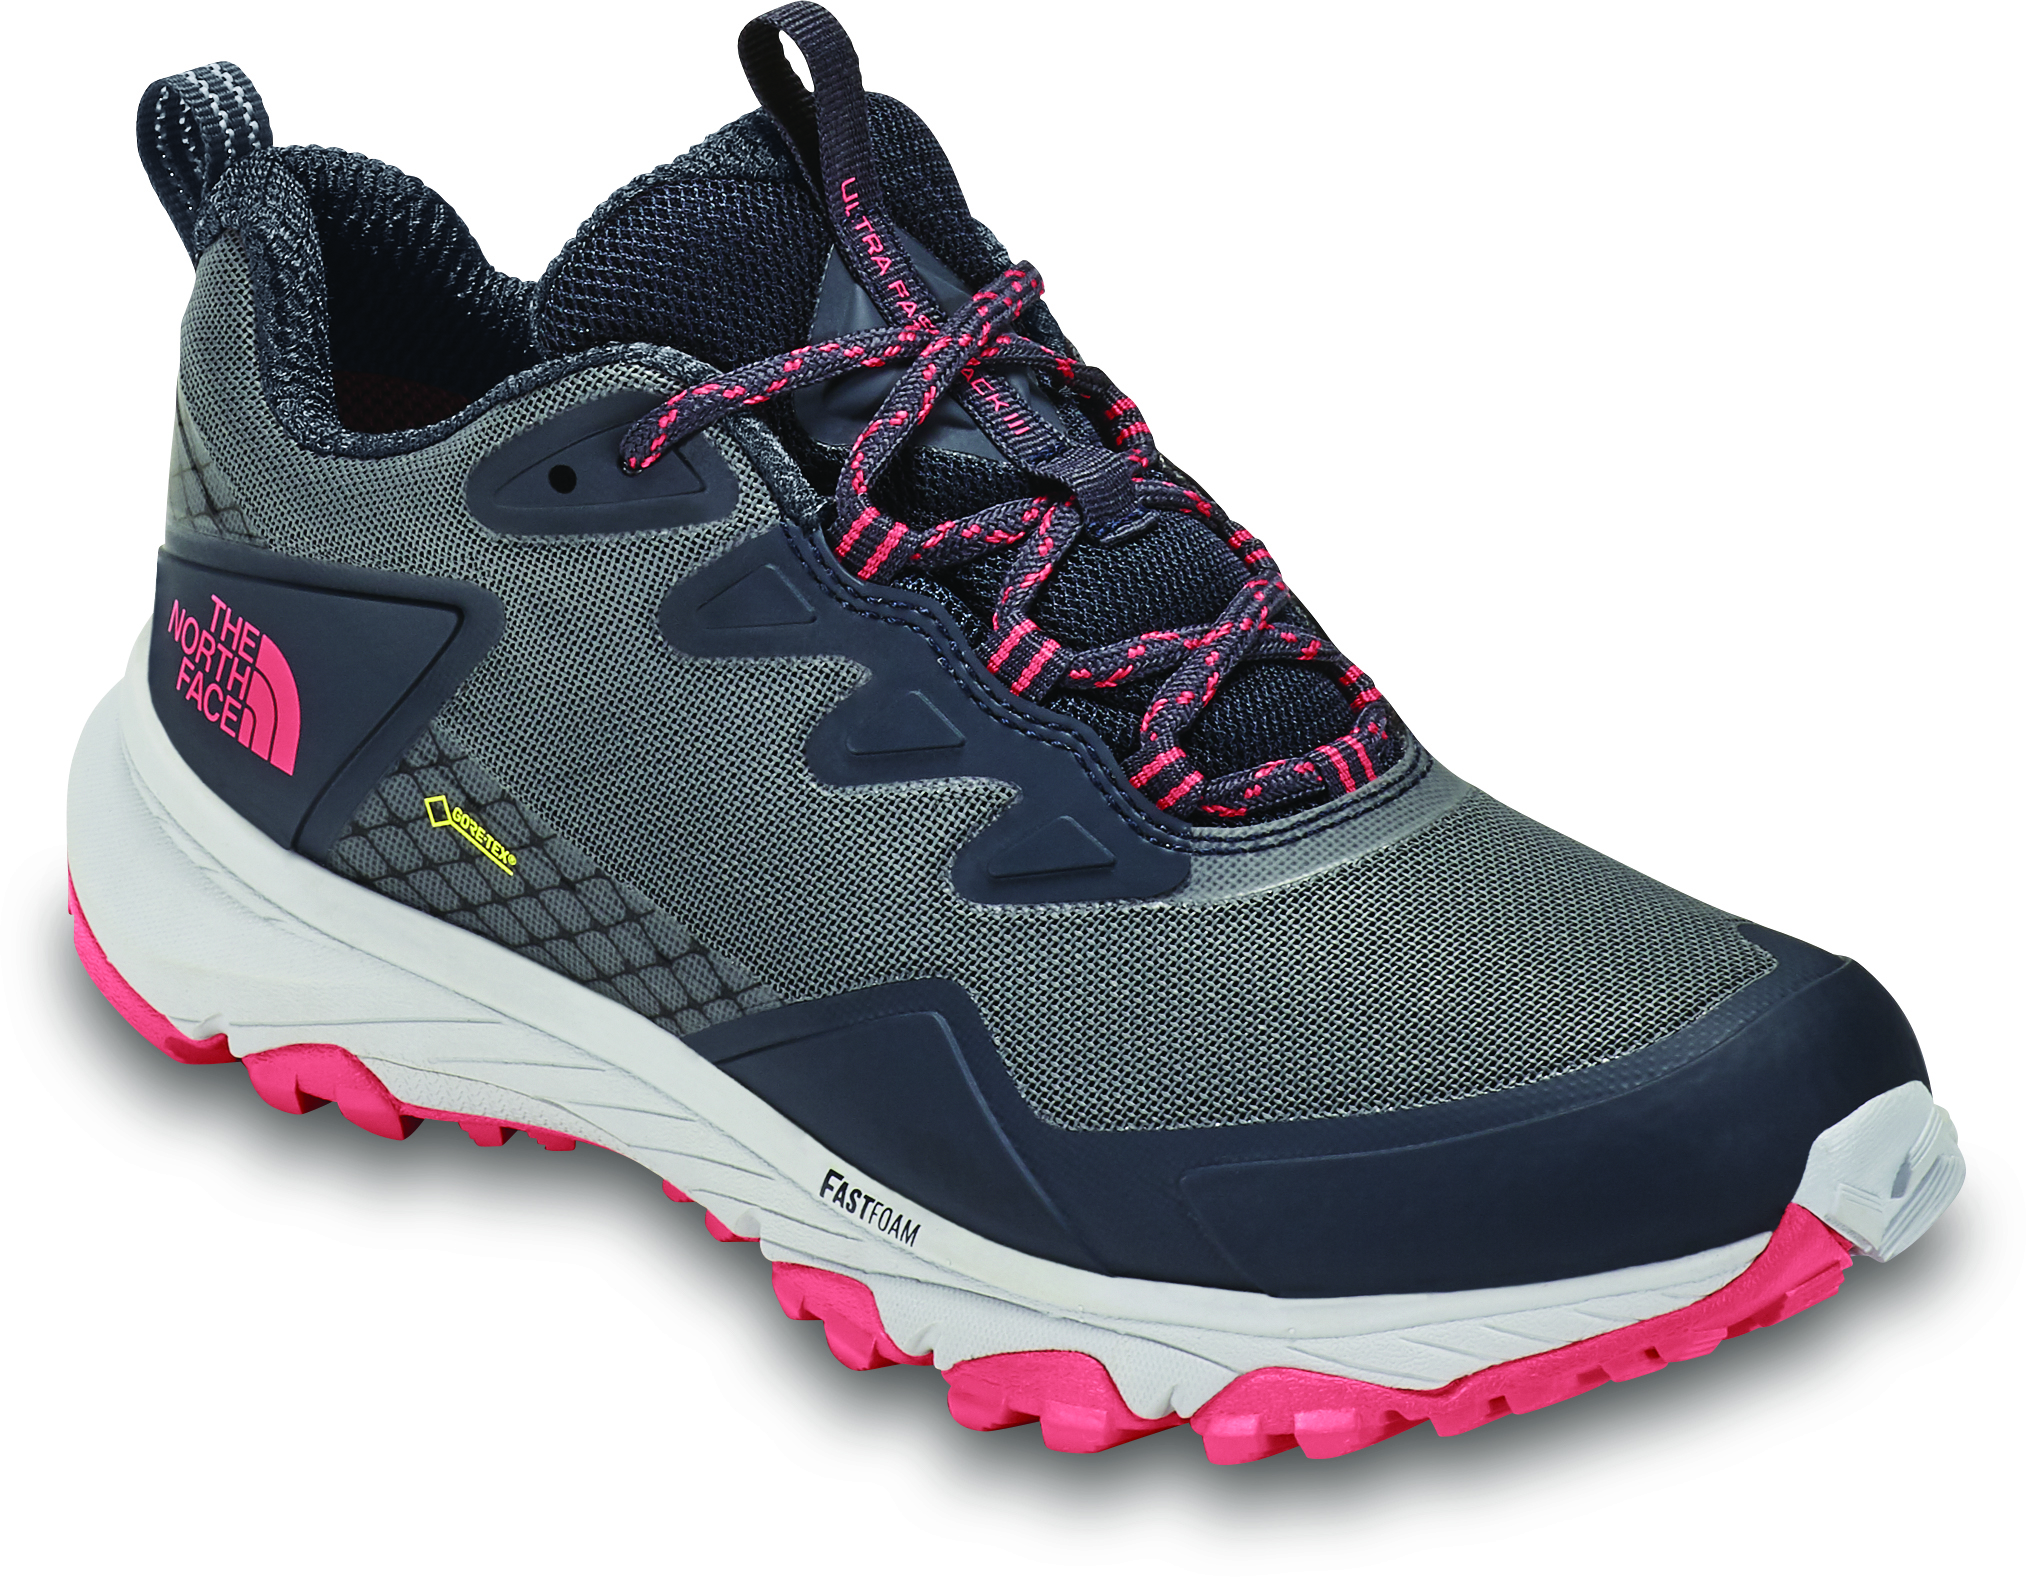 284ae1508 The North Face Ultra Fastpack III Gore-Tex Trail Shoes - Women's